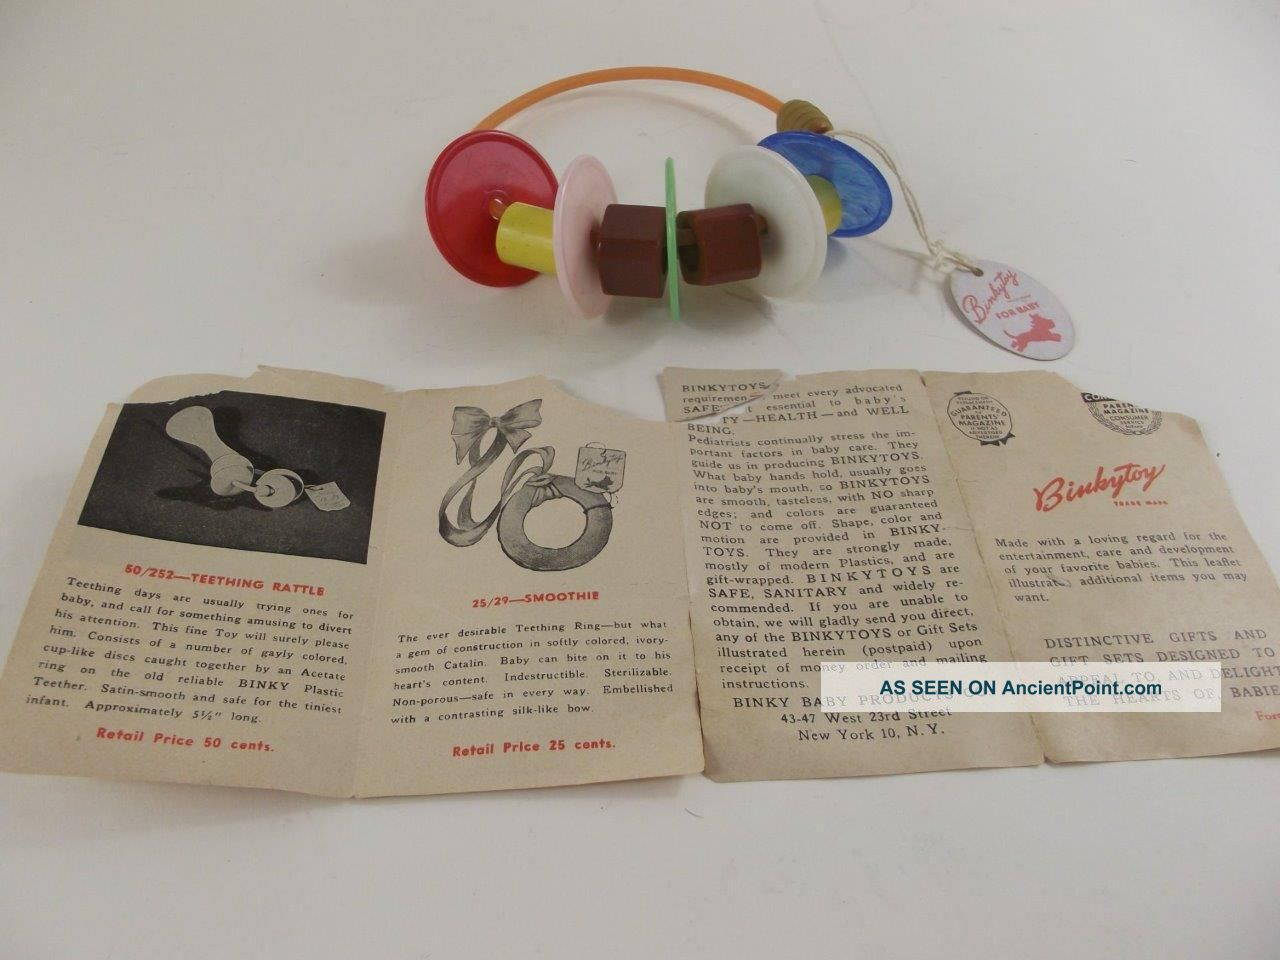 Vintage Binky Baby Products Rattle Toy Binkytoys With Tag 1950 Baby Carriages & Buggies photo